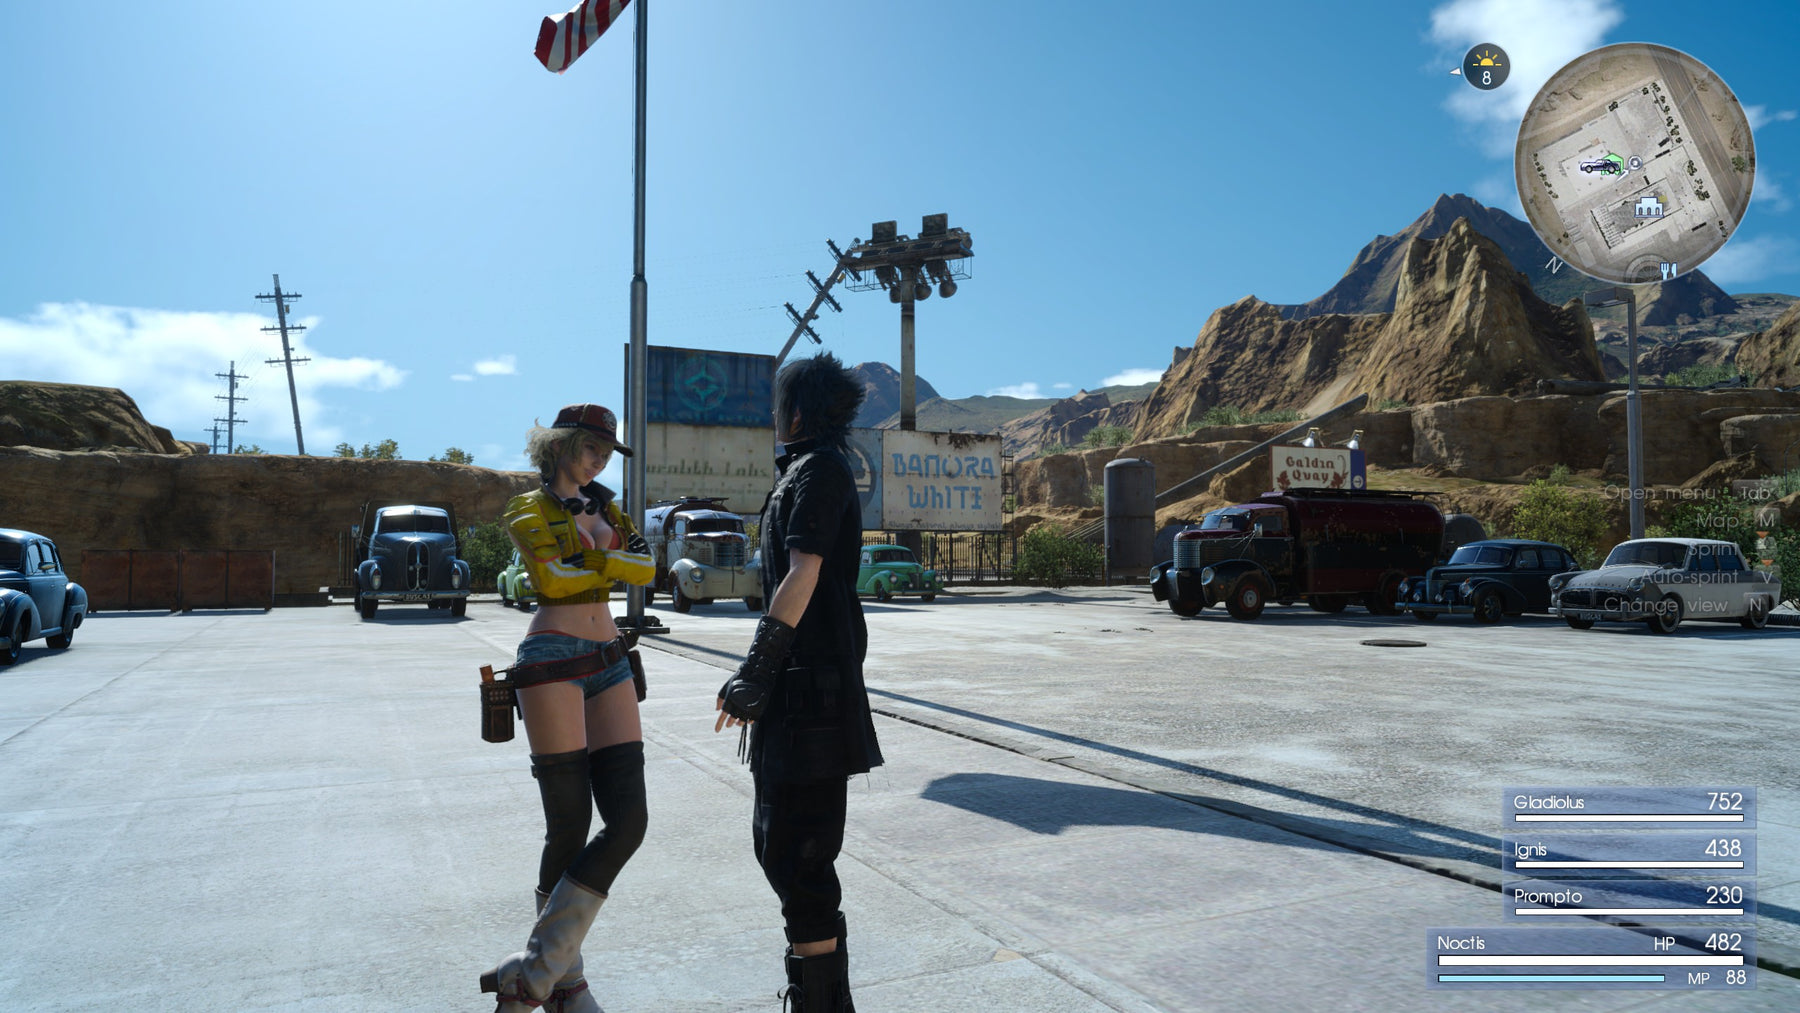 #Finalfantasy XV - Click to see all